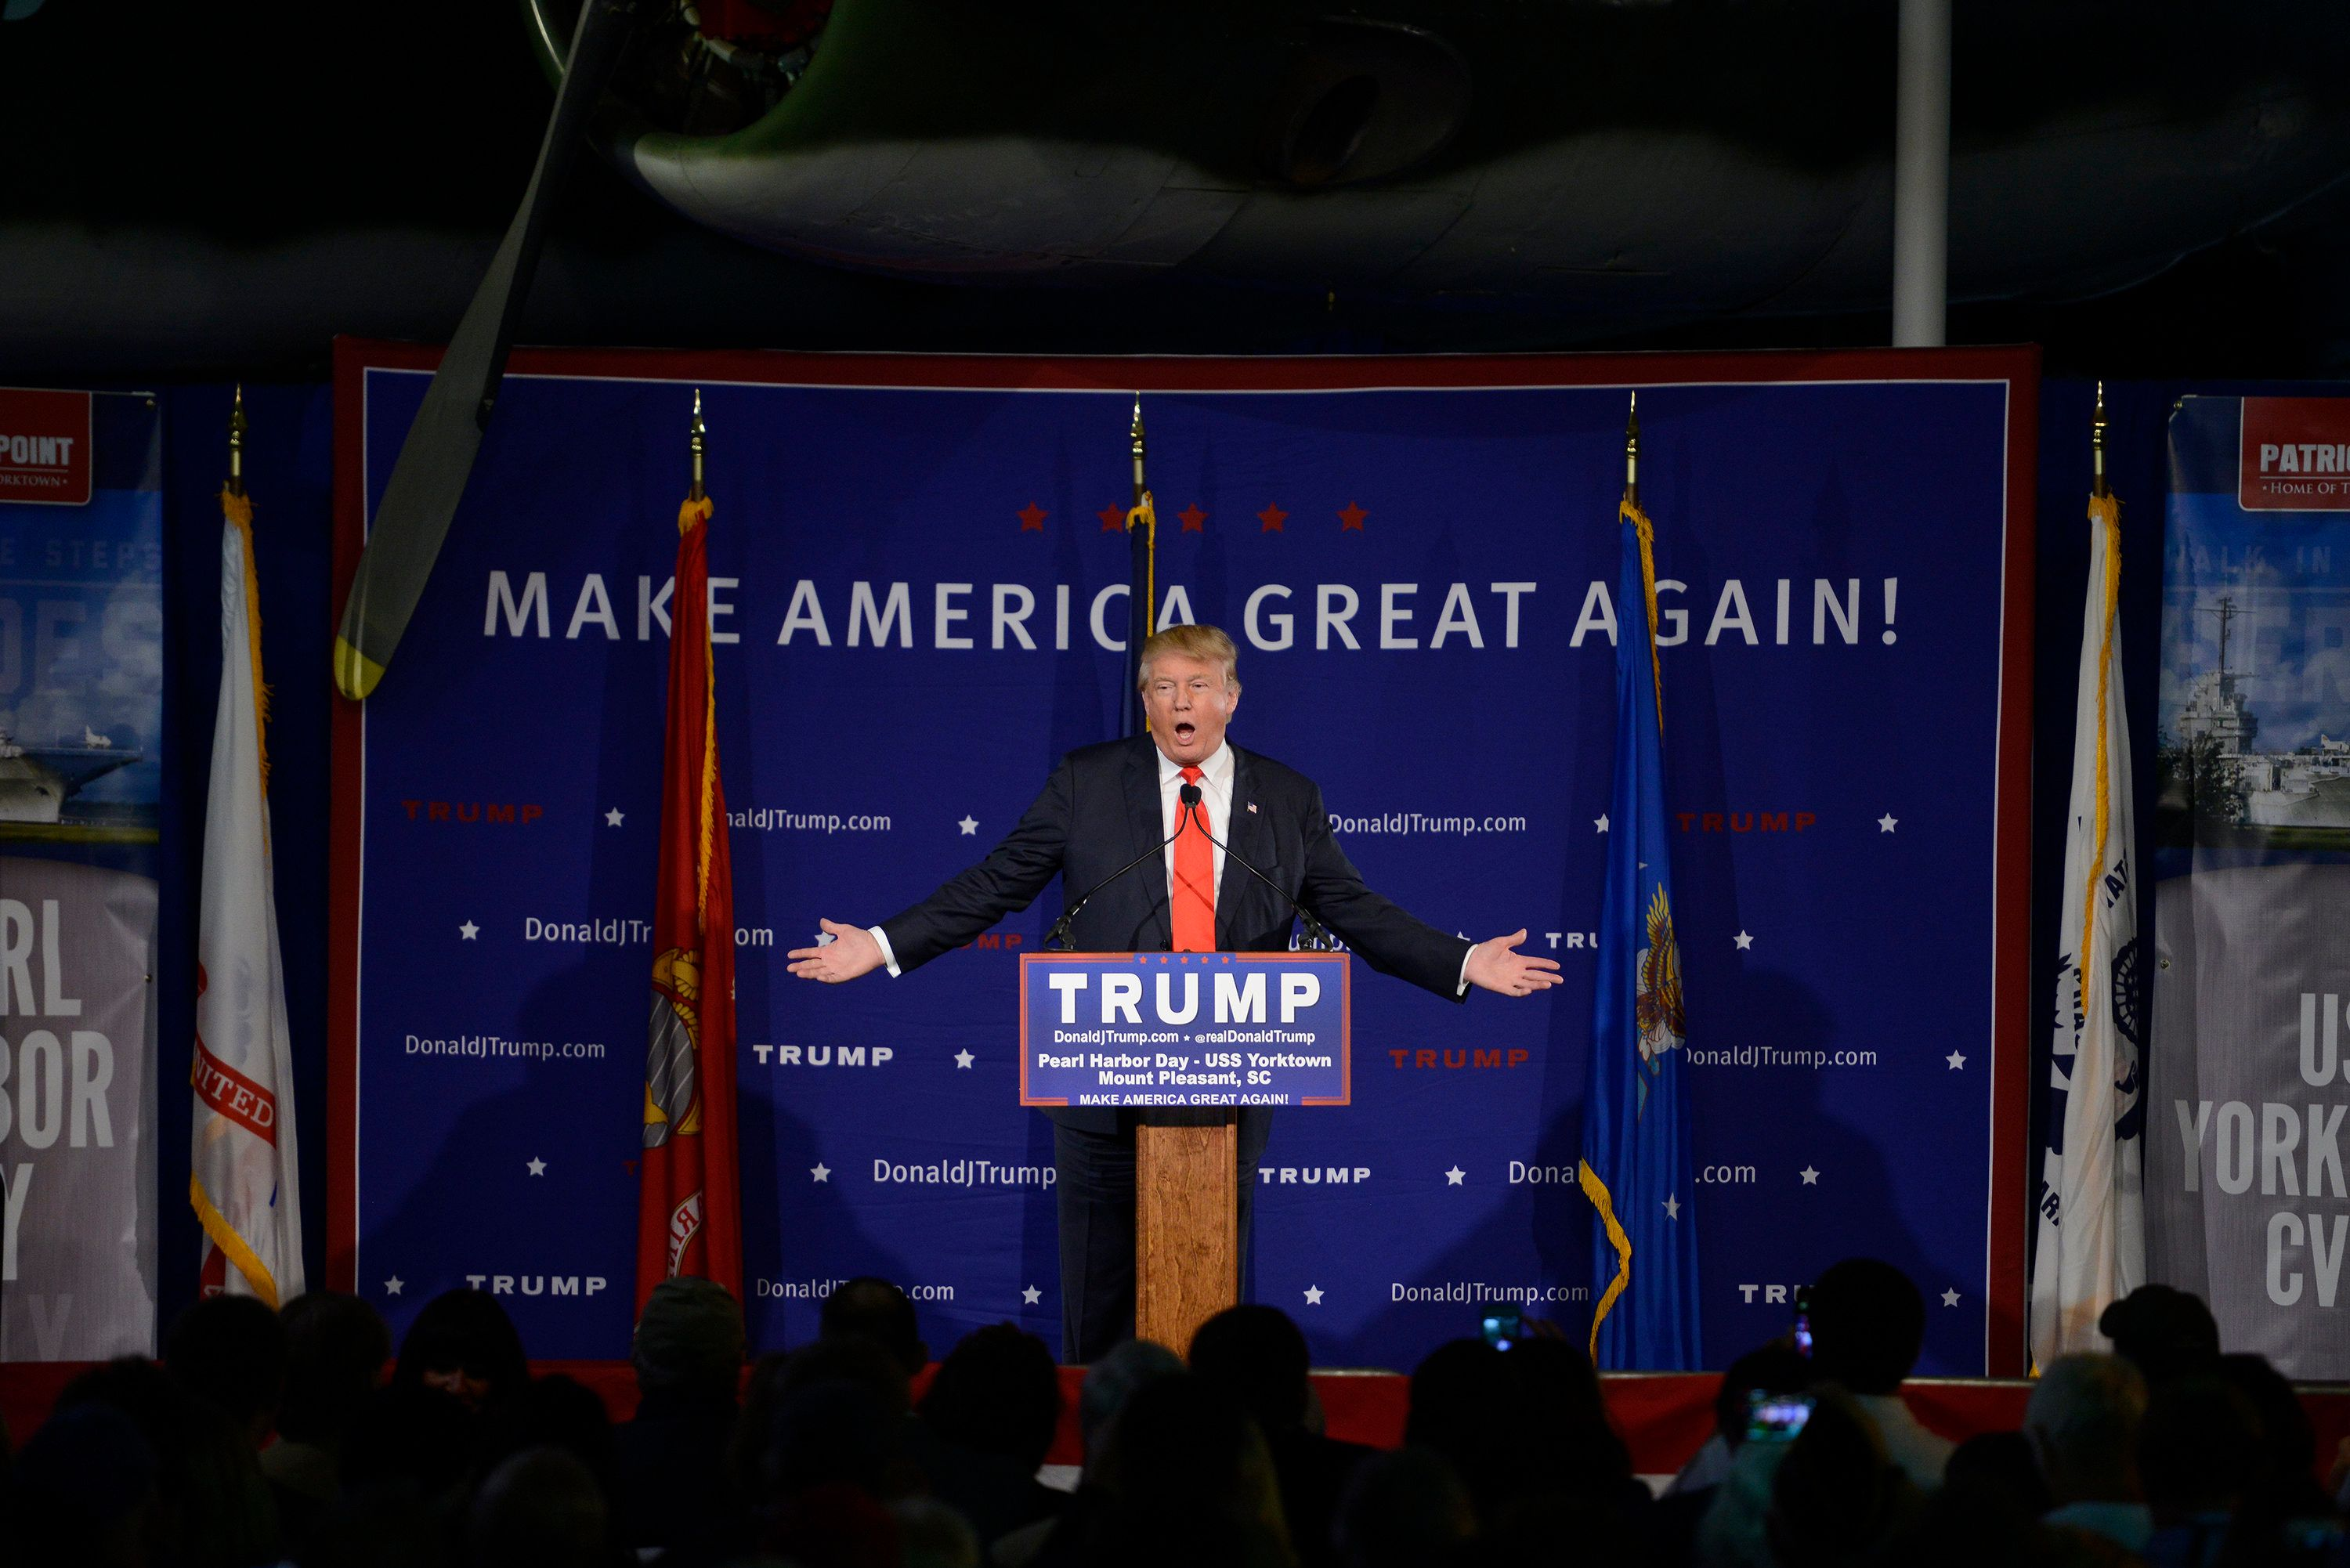 MOUNT PLEASANT, SC - DECEMBER 7: Republican presidential front-runner Donald Trump holds a campaign rally on board the aircraft carrier USS Yorktown on December 7, 2015 in Mount Pleasant, South Carolina.  The candidate called on Monday for a 'total and complete shutdown' of the entry of Muslims to the United States 'until our country's representatives can figure out what is going on.' (Photos by Charles Ommanney/The Washington Post via Getty Images)